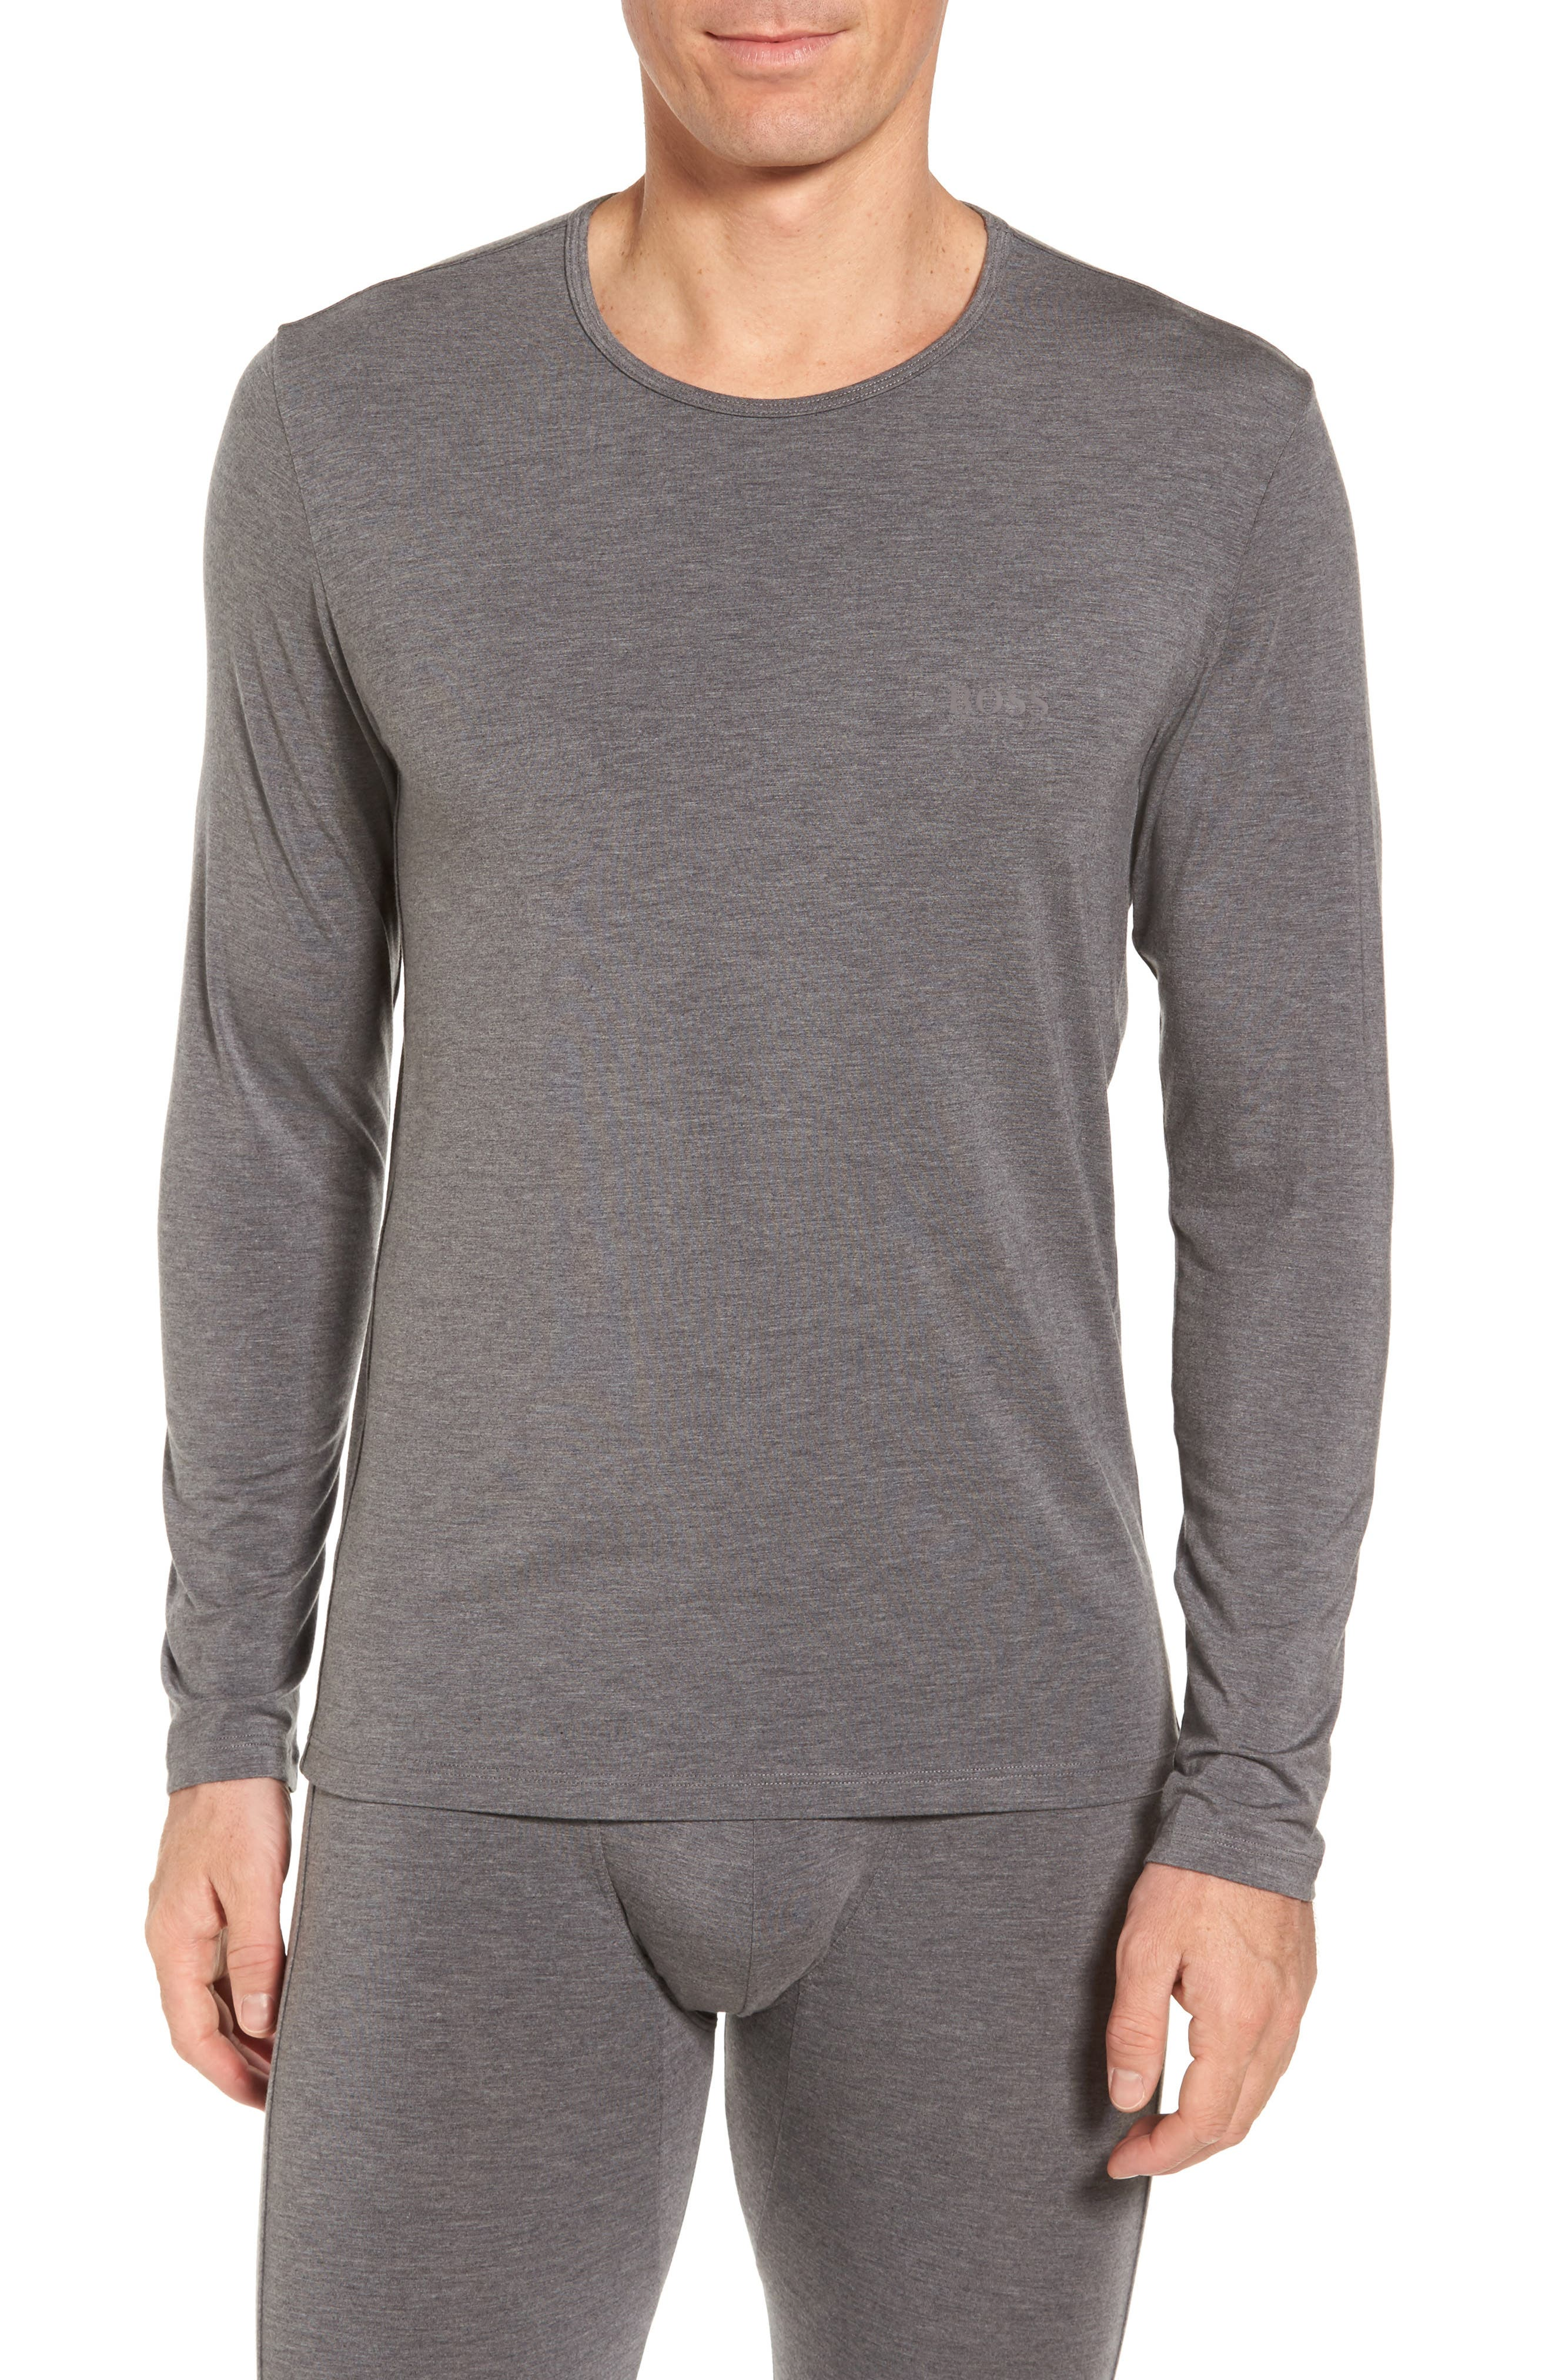 Thermal Long Sleeve T-Shirt,                         Main,                         color, Charcoal